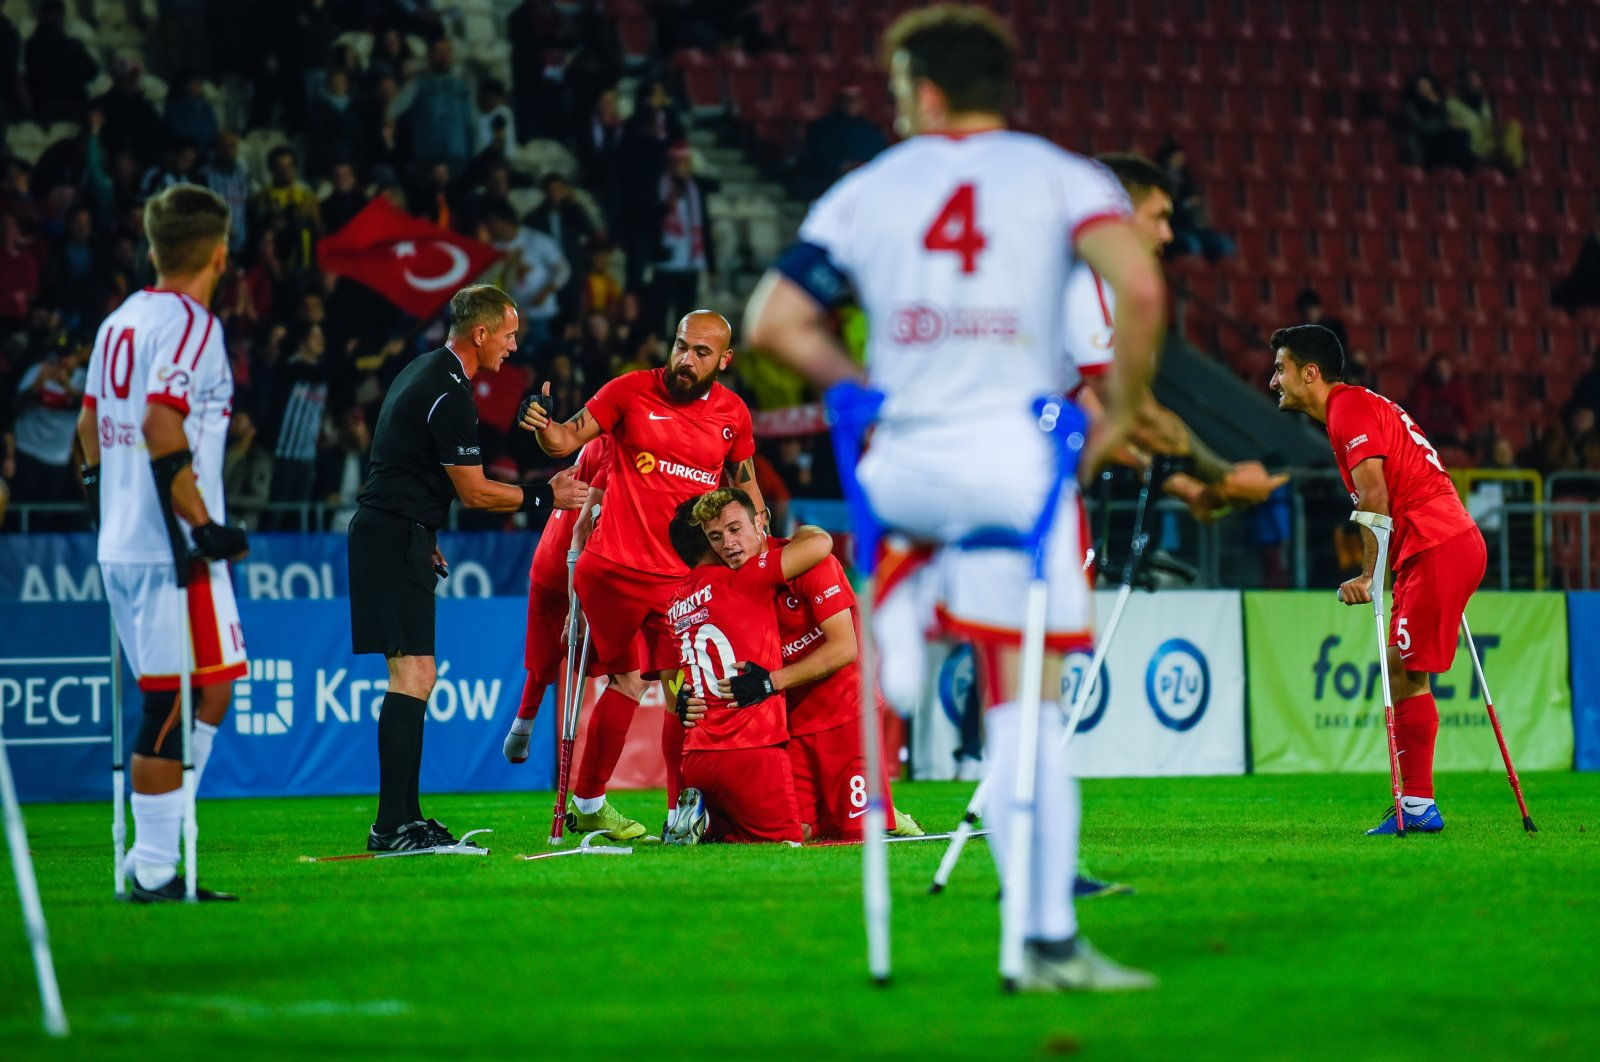 Turkishnational amputee football team players celebrate after scoring a goal against Spain,at the Cracovia Stadium in Krakow, Poland, Sept. 19, 2021. (AA Photo)